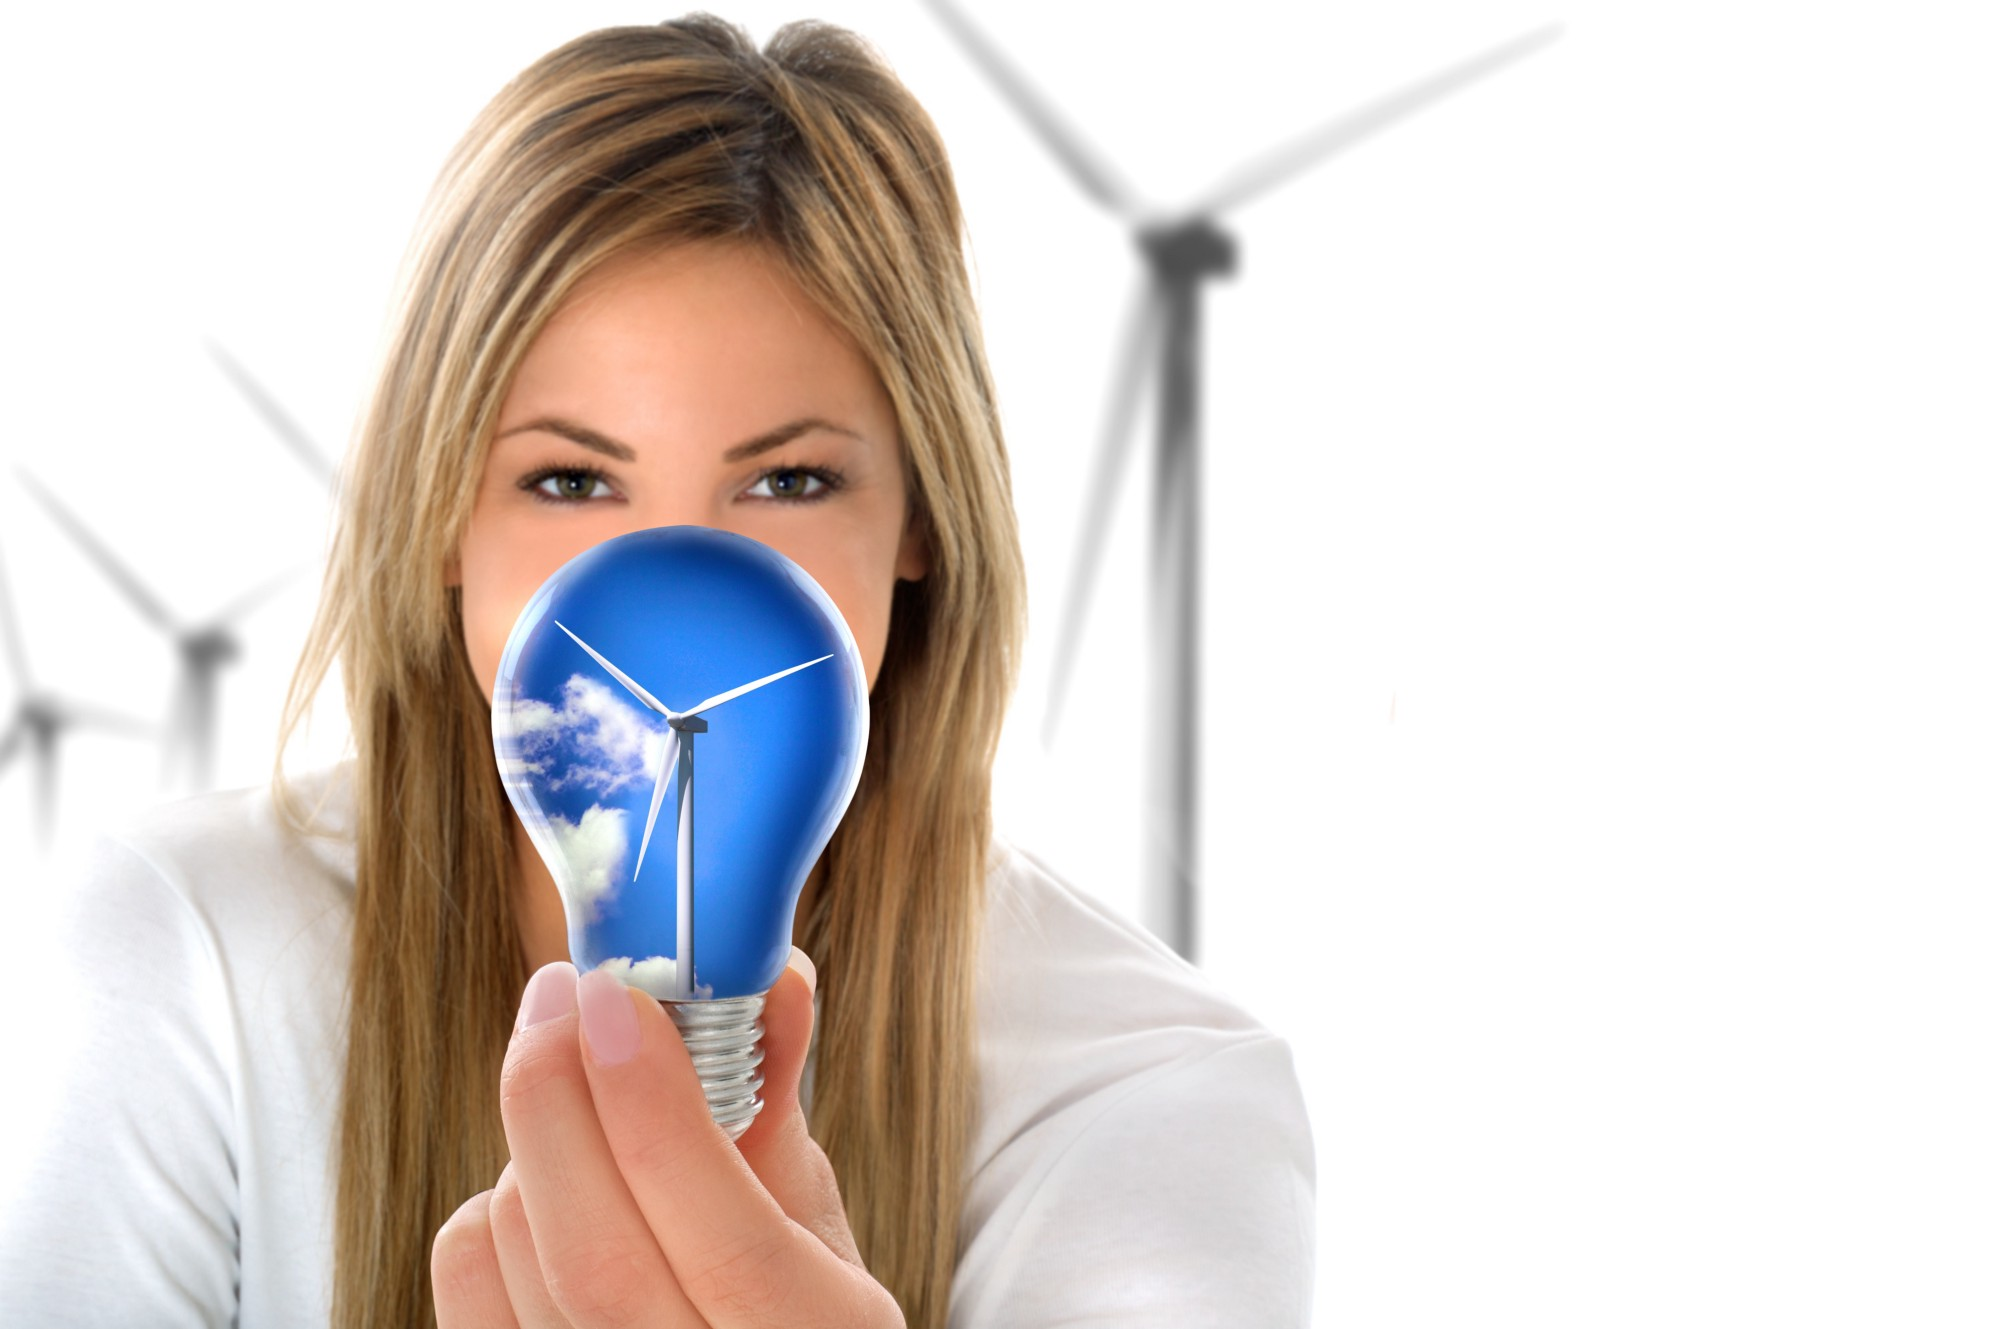 Woman holds light bulb in front of her with an image of a wind turbine inside